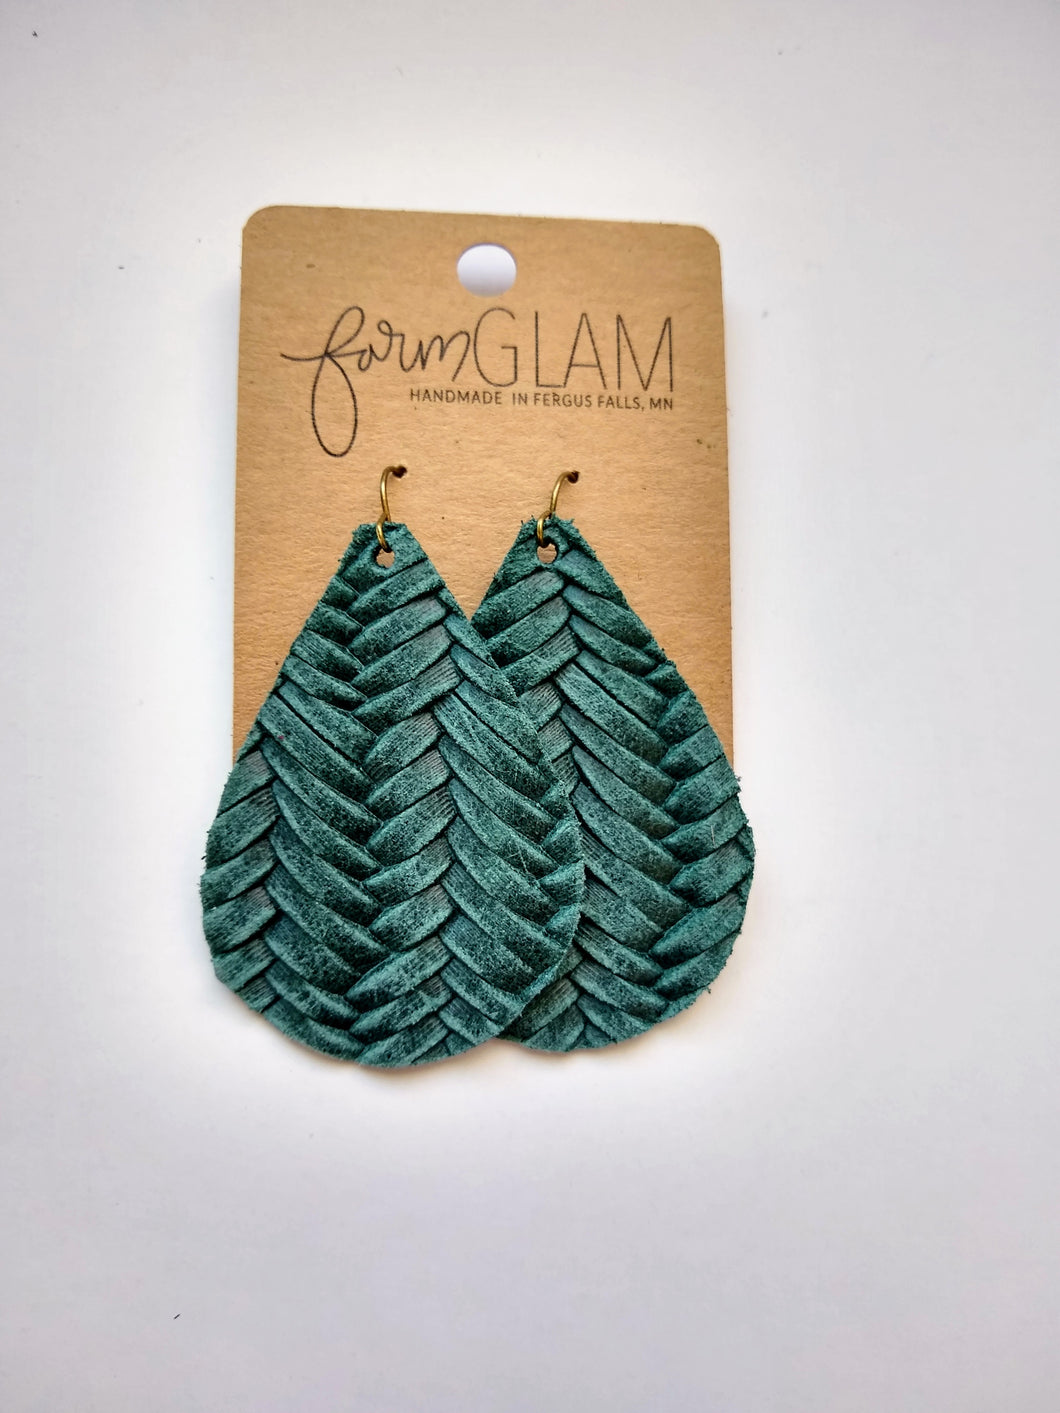 PINE BRAIDED LEATHER